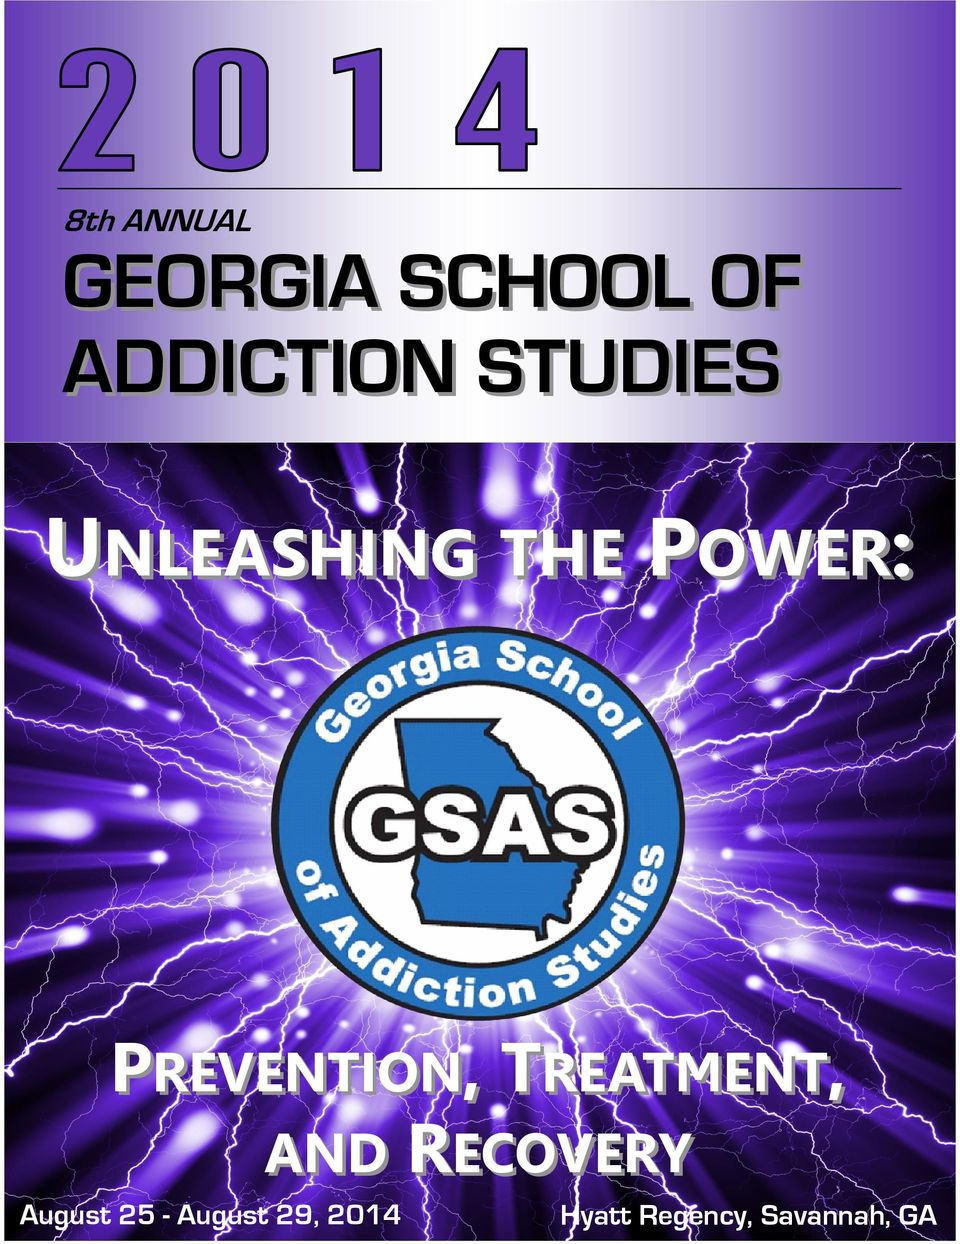 UNLEASHING GEORGIA SCHOOL OF ADDICTION STUDIES THE POWER